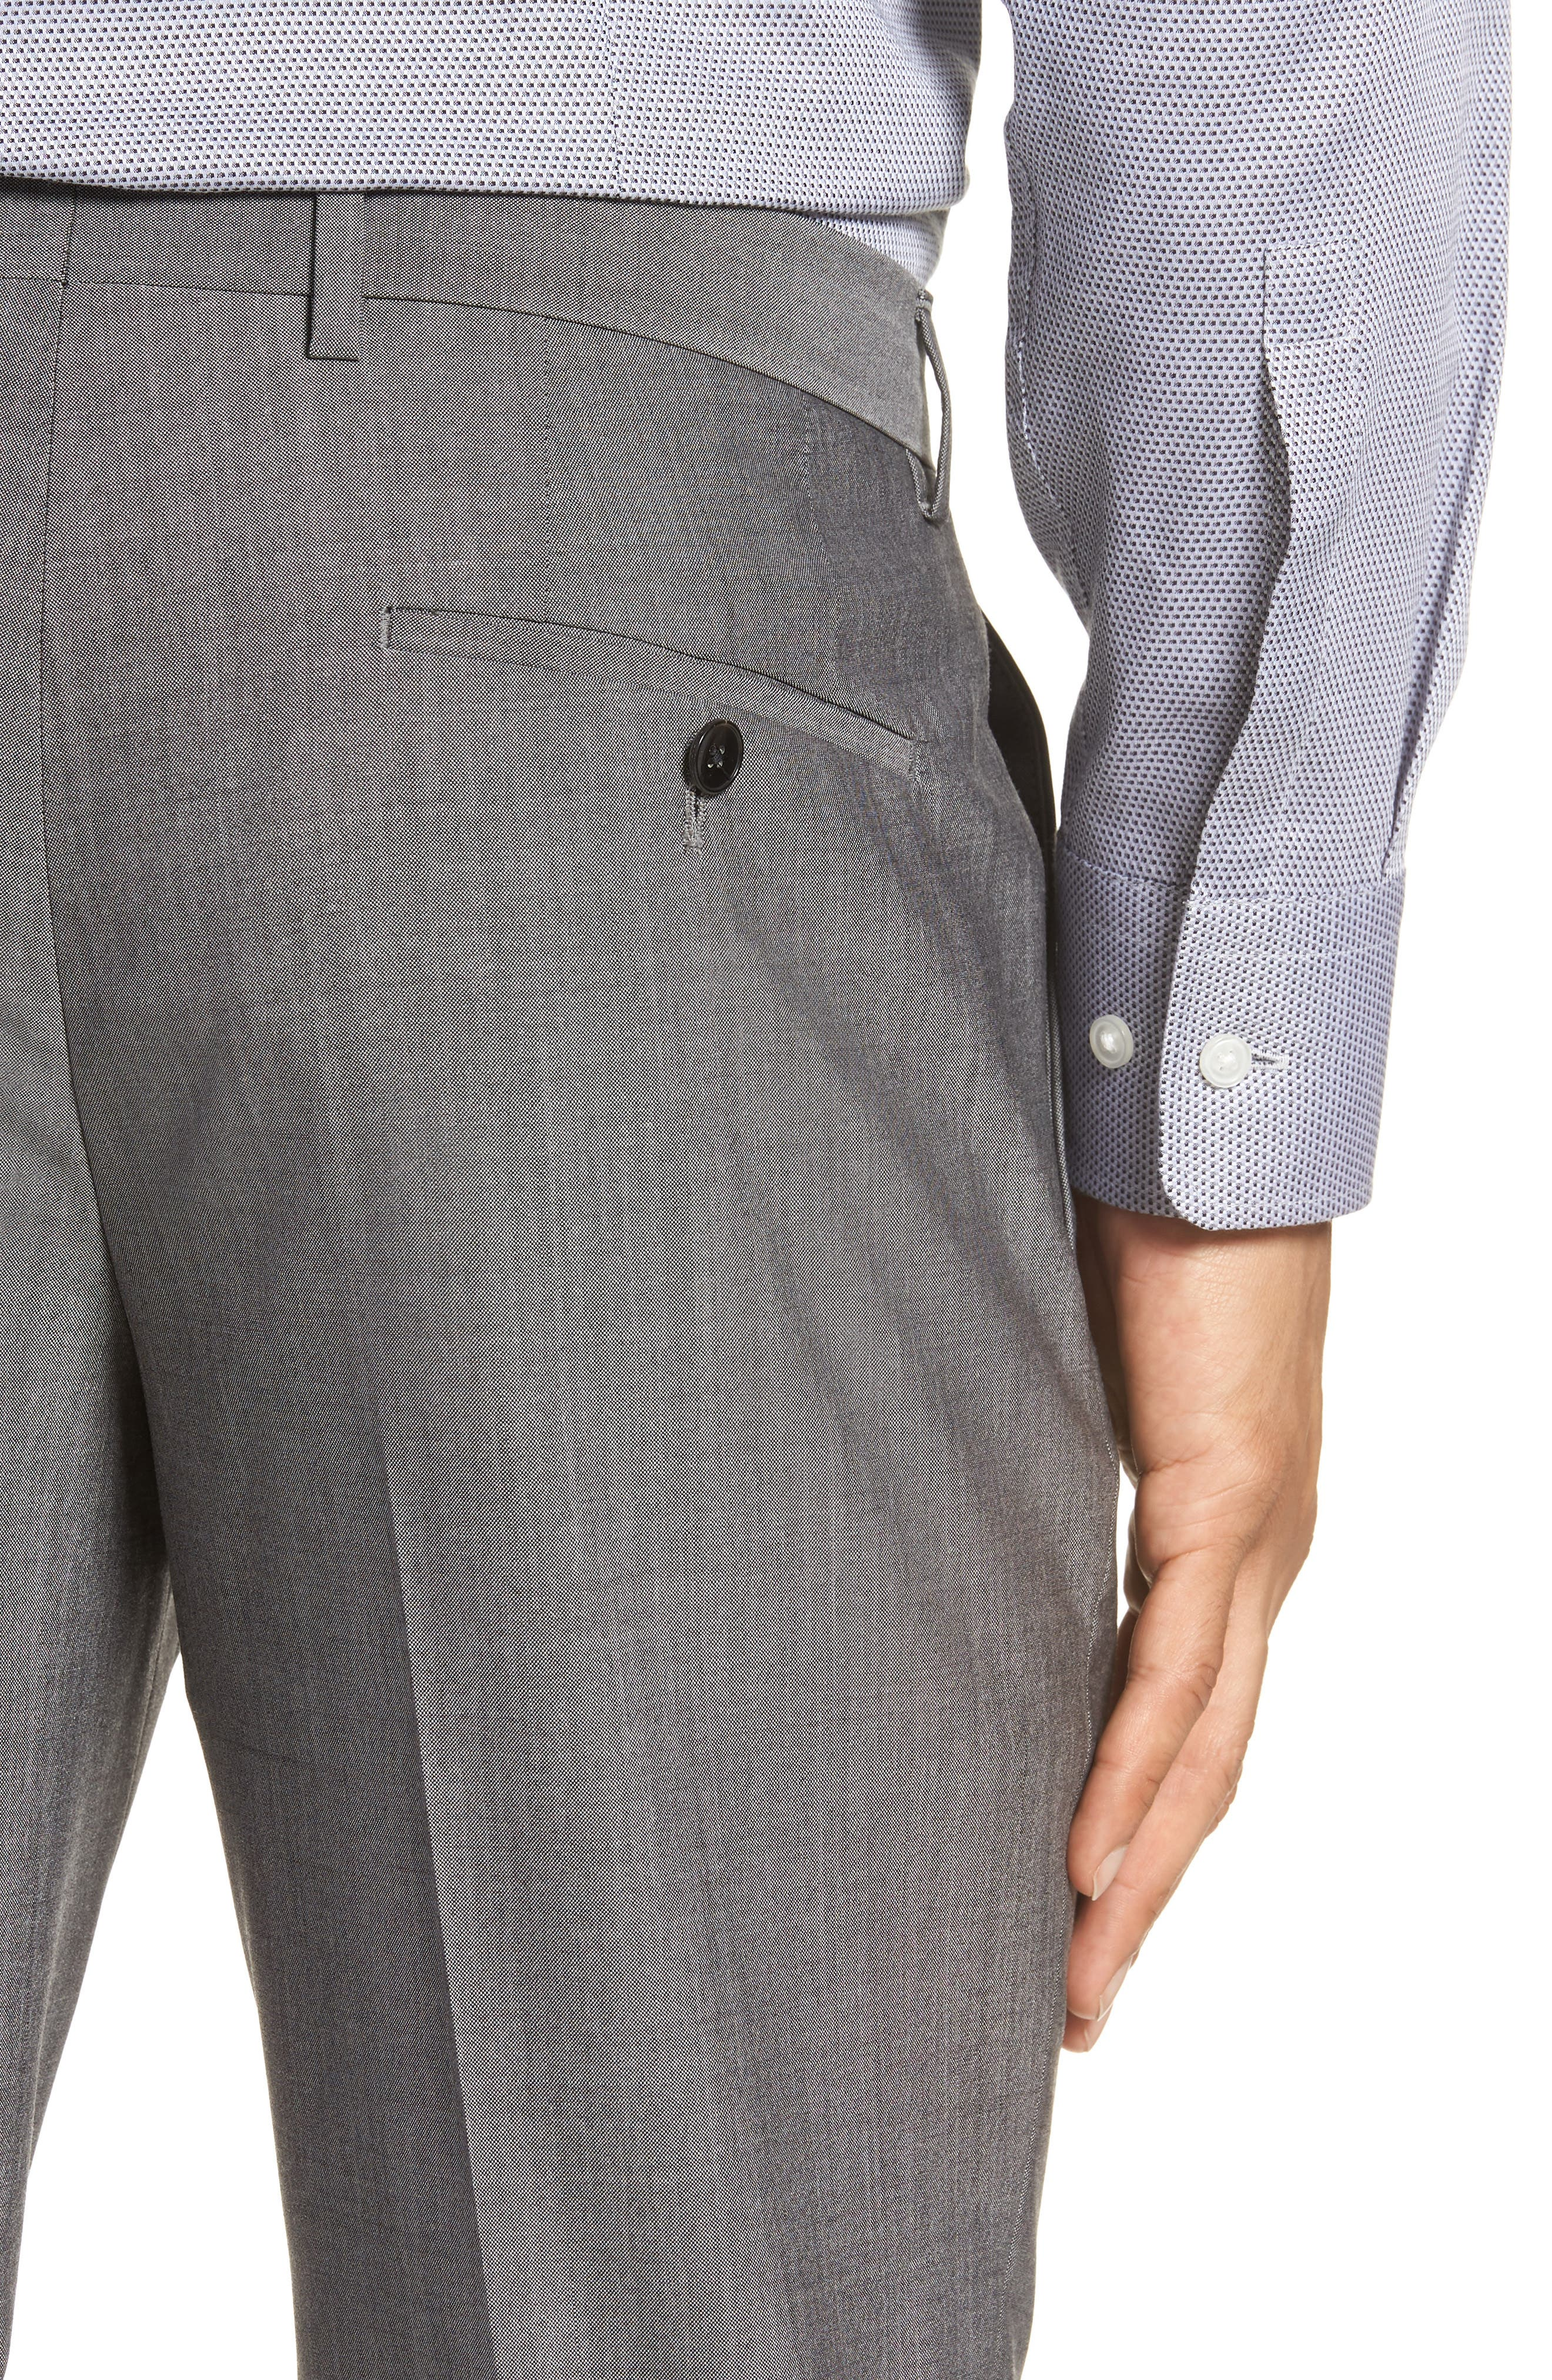 Genesis Flat Front Solid Wool Trousers,                             Alternate thumbnail 4, color,                             GREY